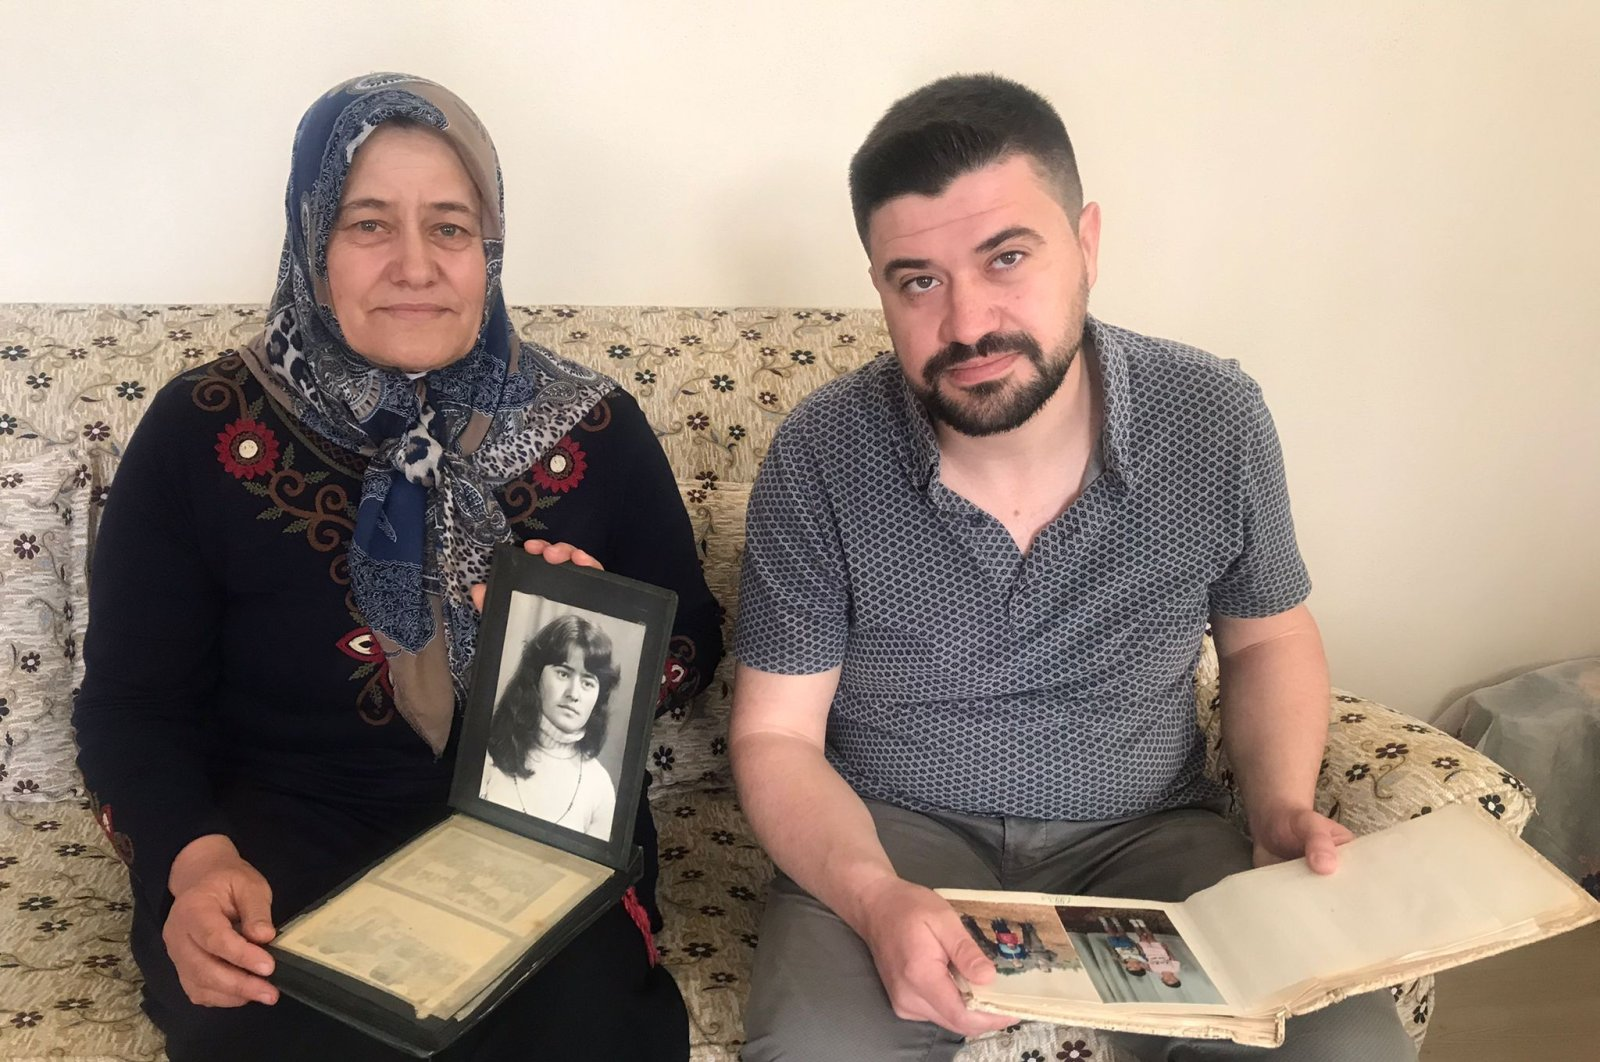 Hatice Özdemir (L) and her son Mümin, who were forced to leave Bulgaria in 1989, show their family album in their home, in Kocaeli, northwestern Turkey, May 21, 2021. (AA PHOTO)